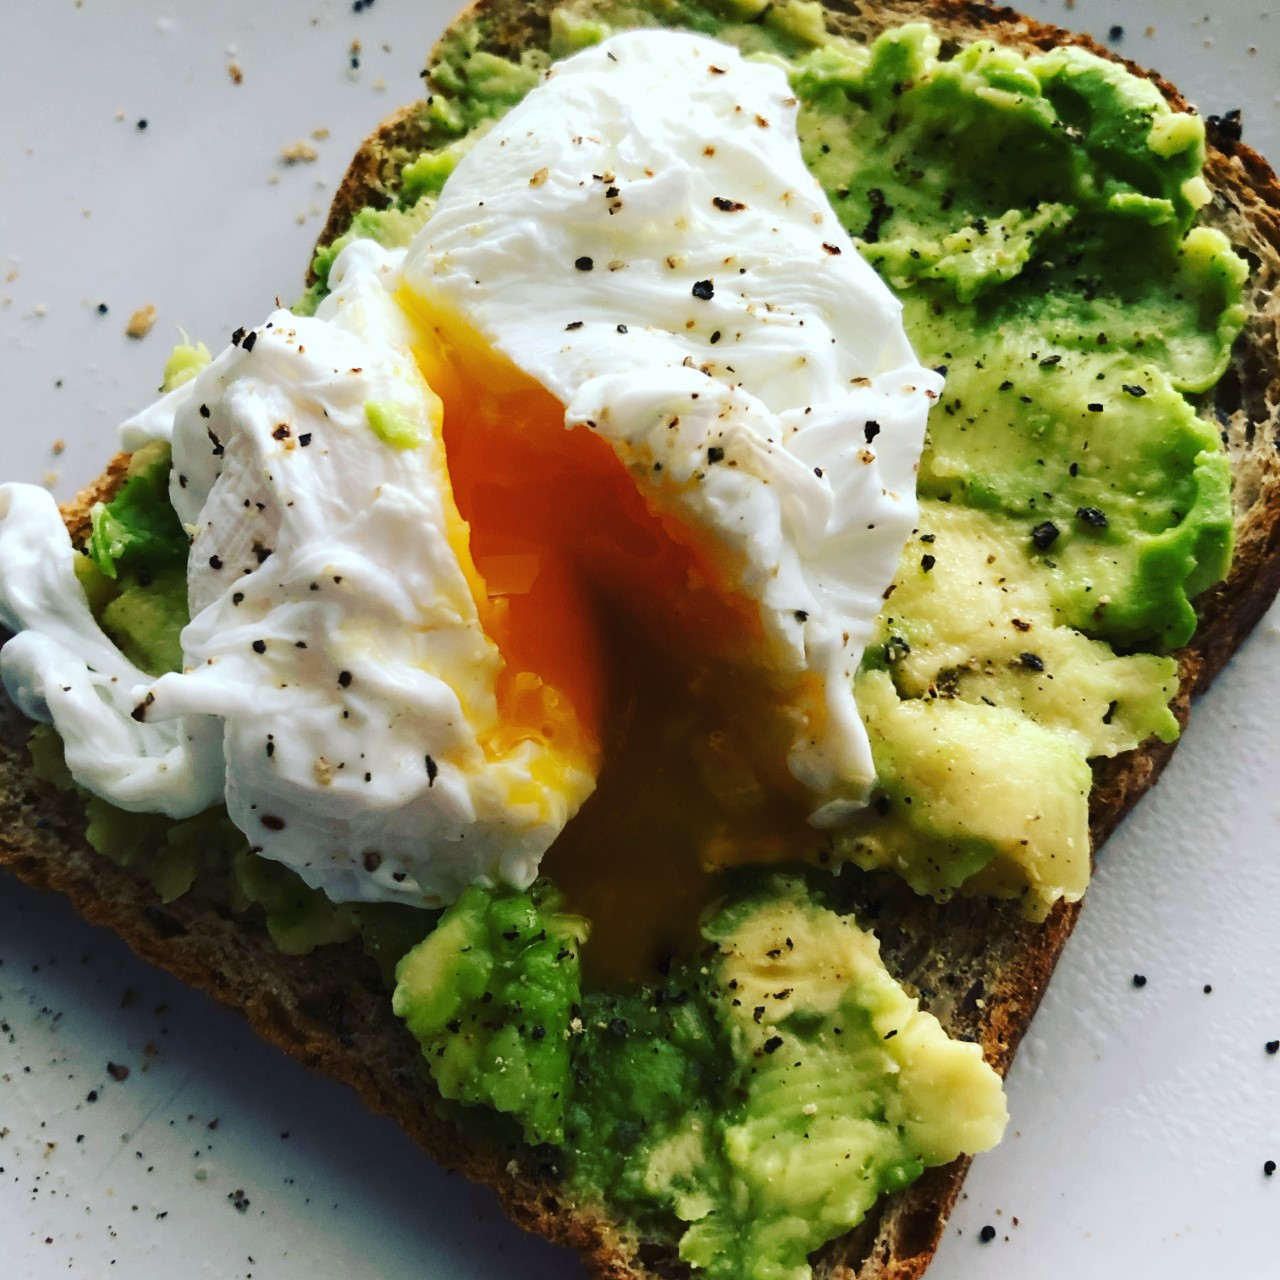 Crushed avocado and poached egg on toast